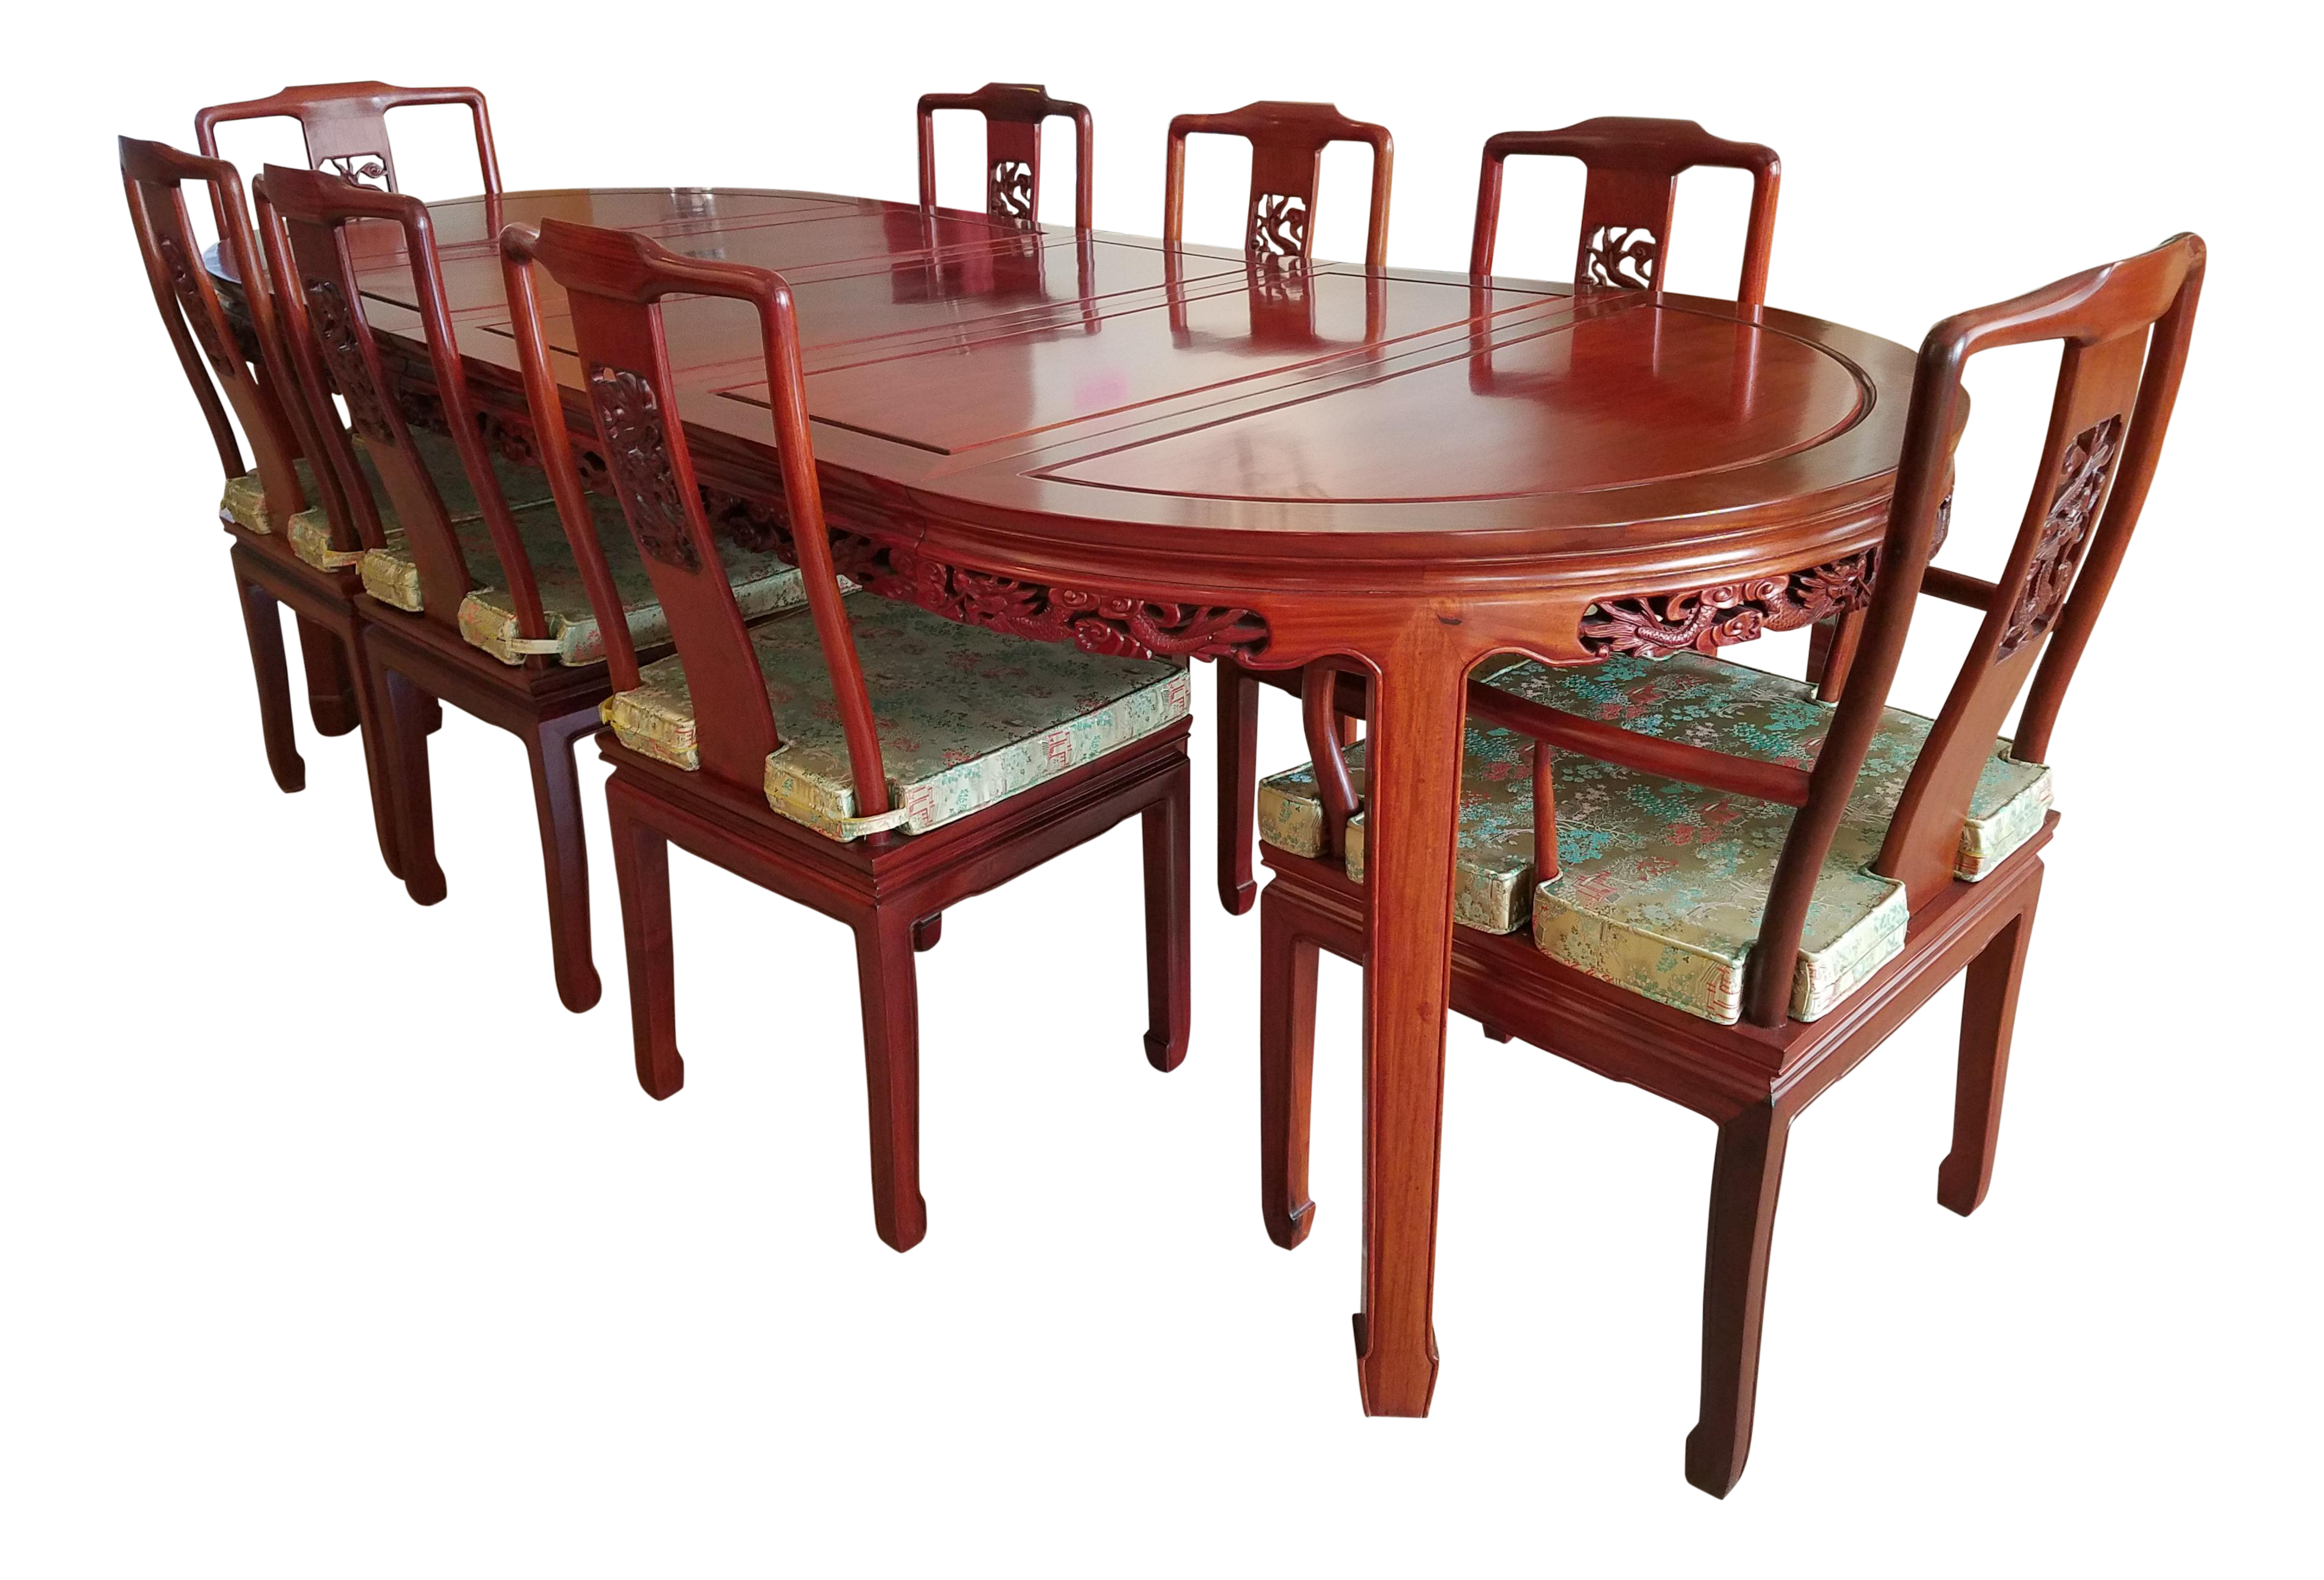 Vintage Chinese Rosewood Hand Carved Imperial Dragon Dining Table Chairs Set Of 9 On Chairish Com Dining Table Dining Table Chairs Table And Chairs